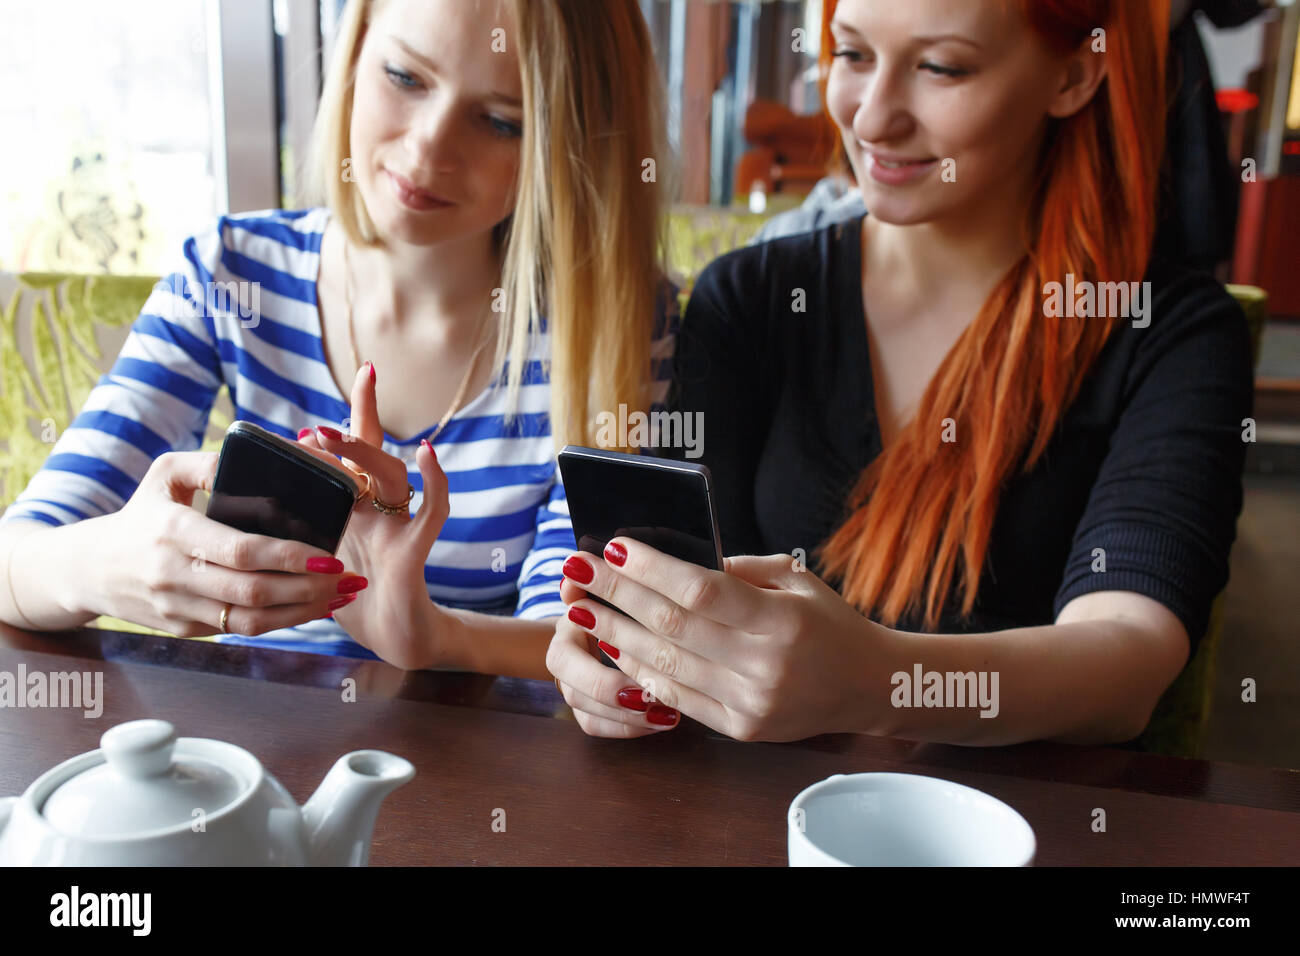 Two women having fun at the cafe and looking at smart phone. - Stock Image